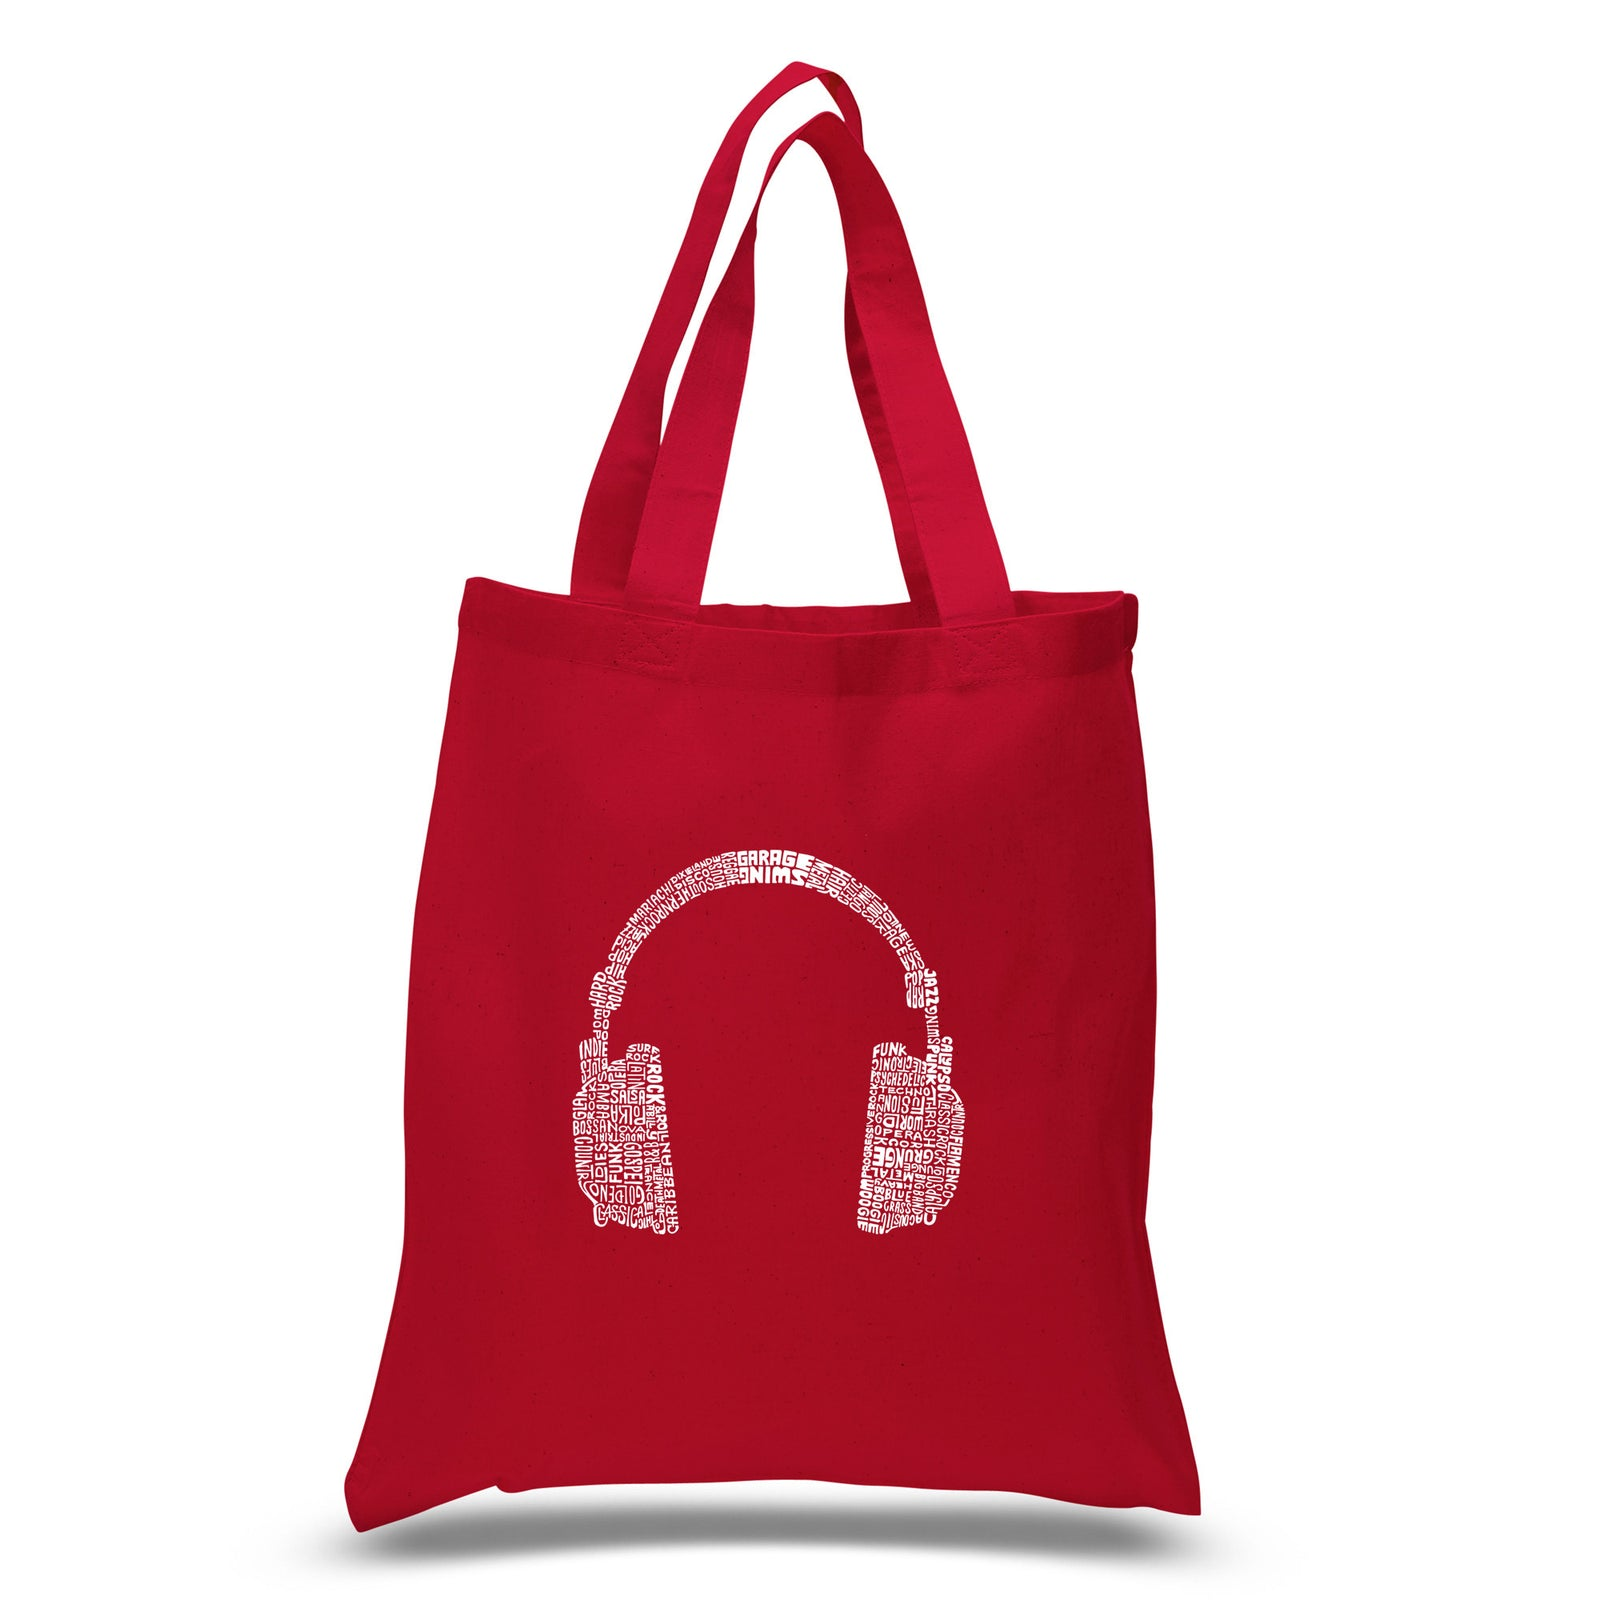 Small Tote Bag - 63 DIFFERENT GENRES OF MUSIC